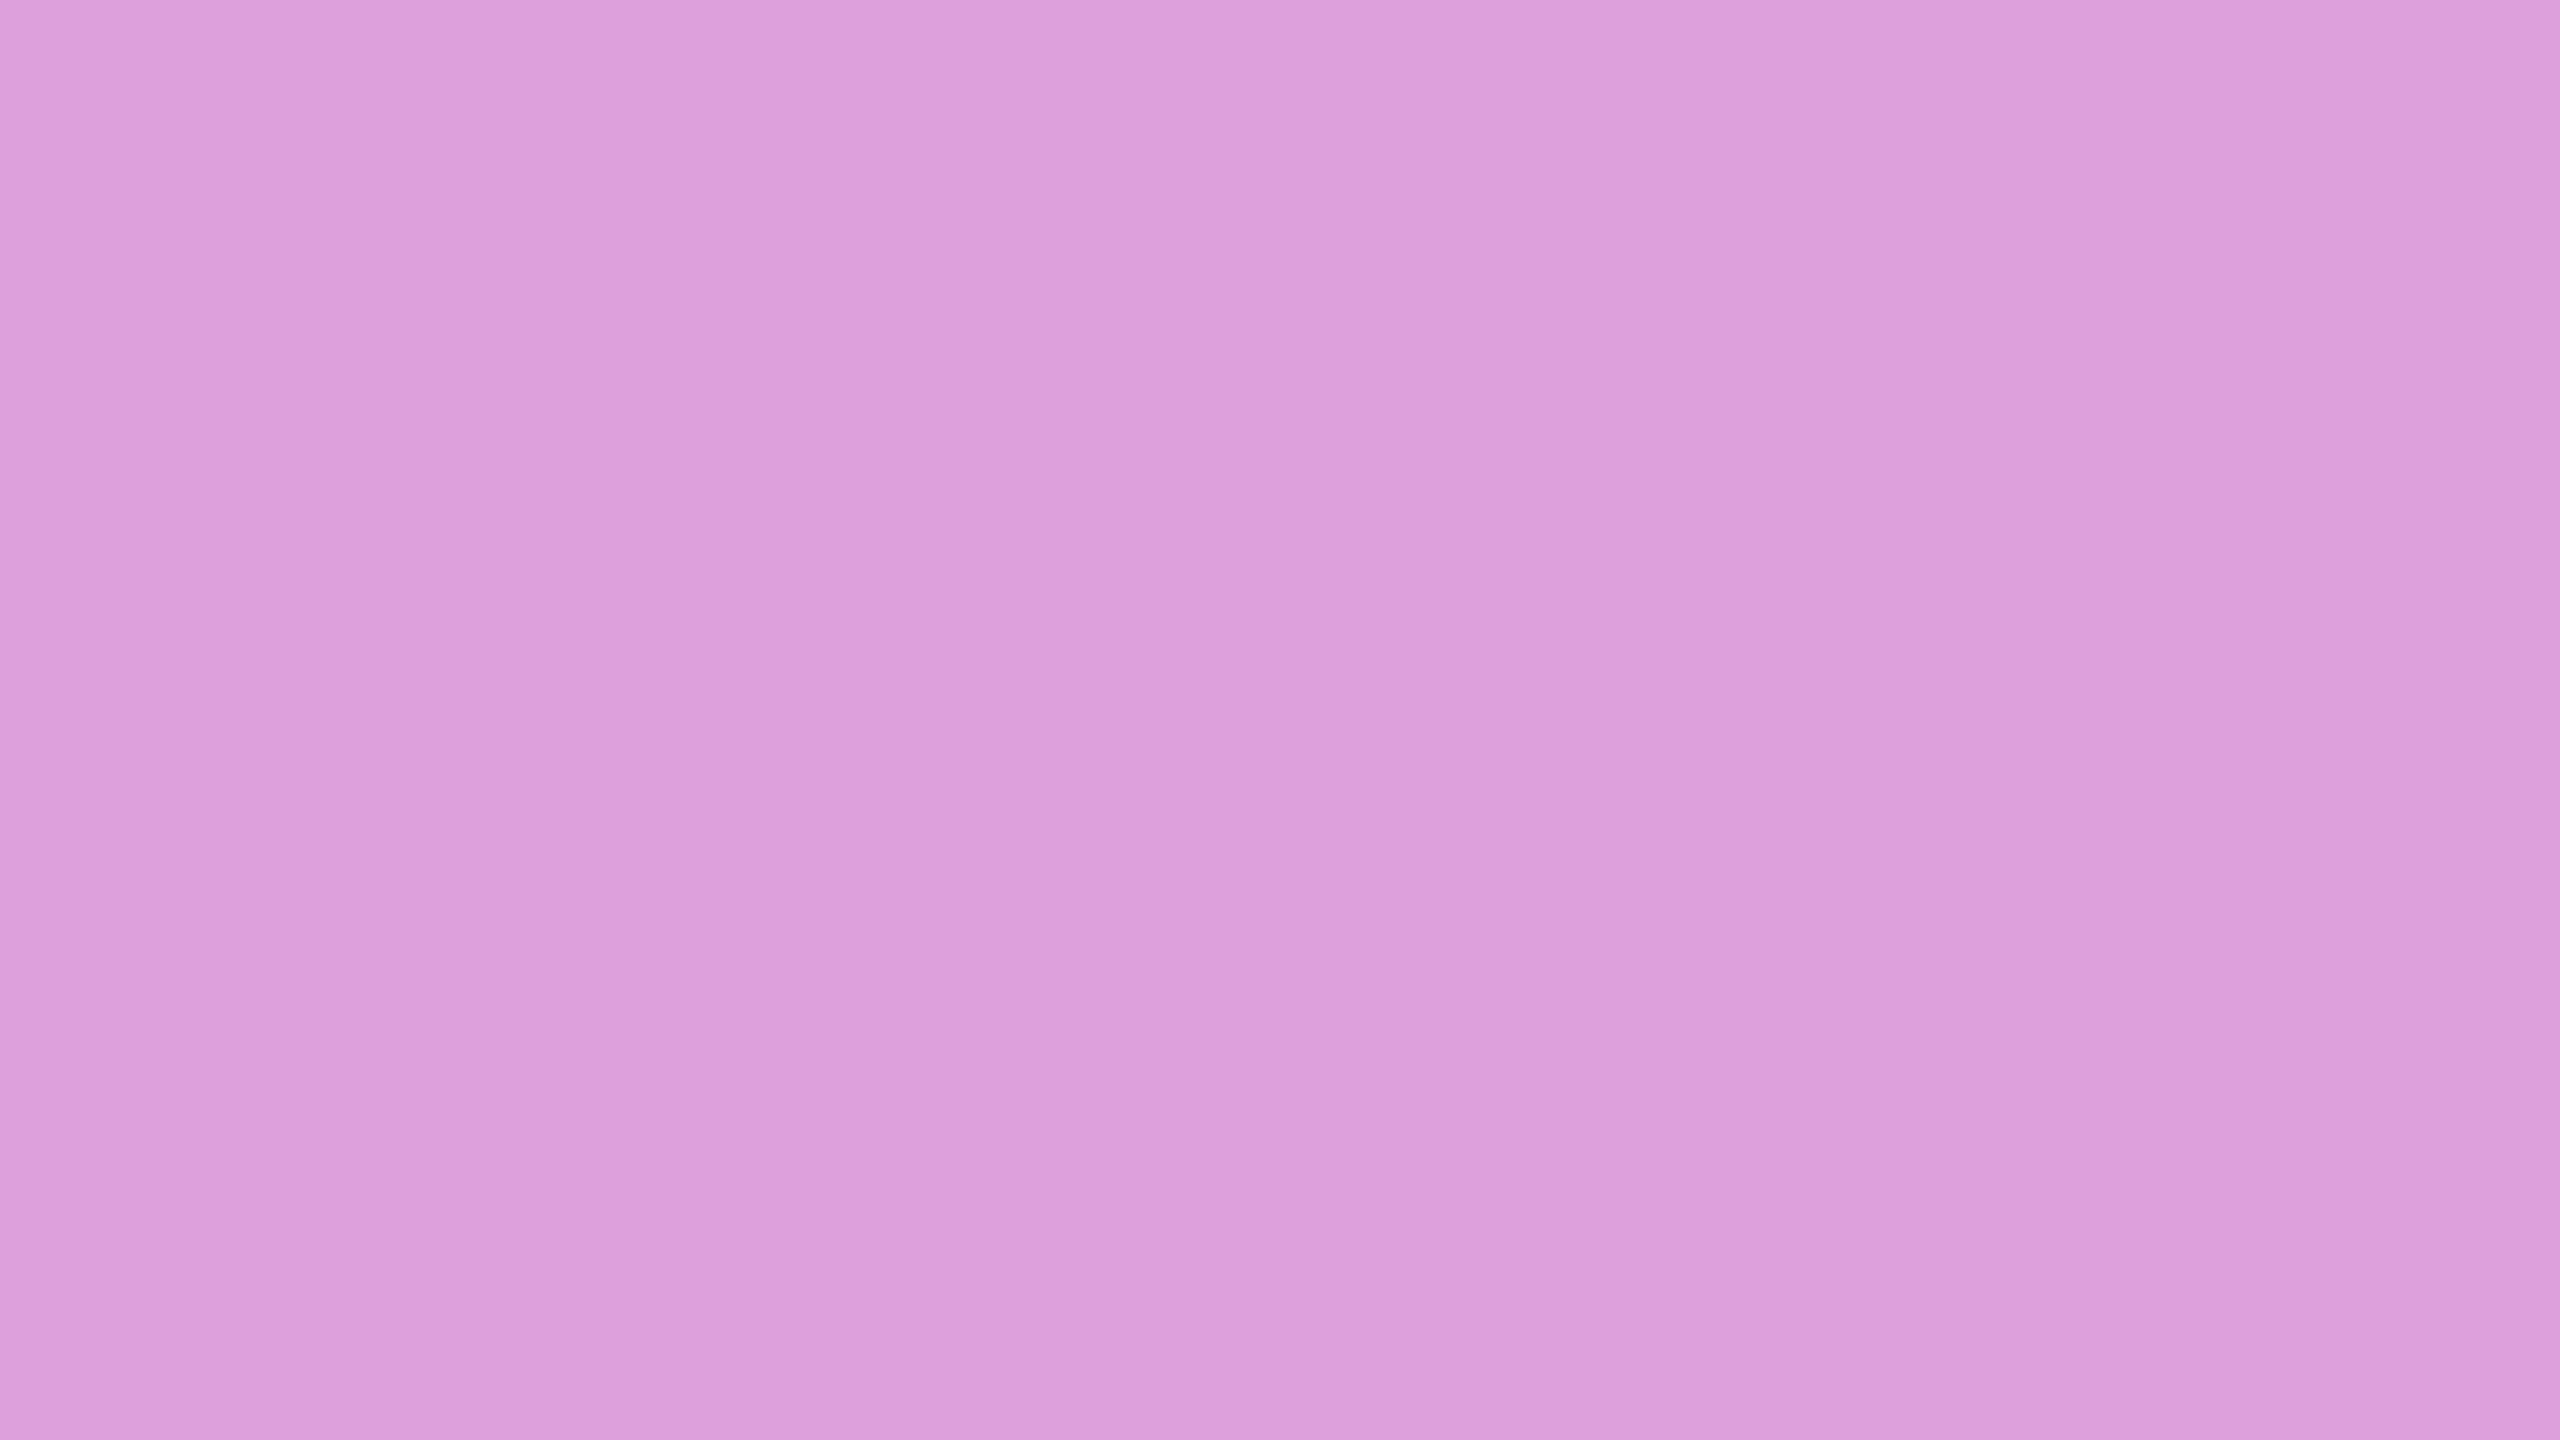 2560x1440 Plum Web Solid Color Background